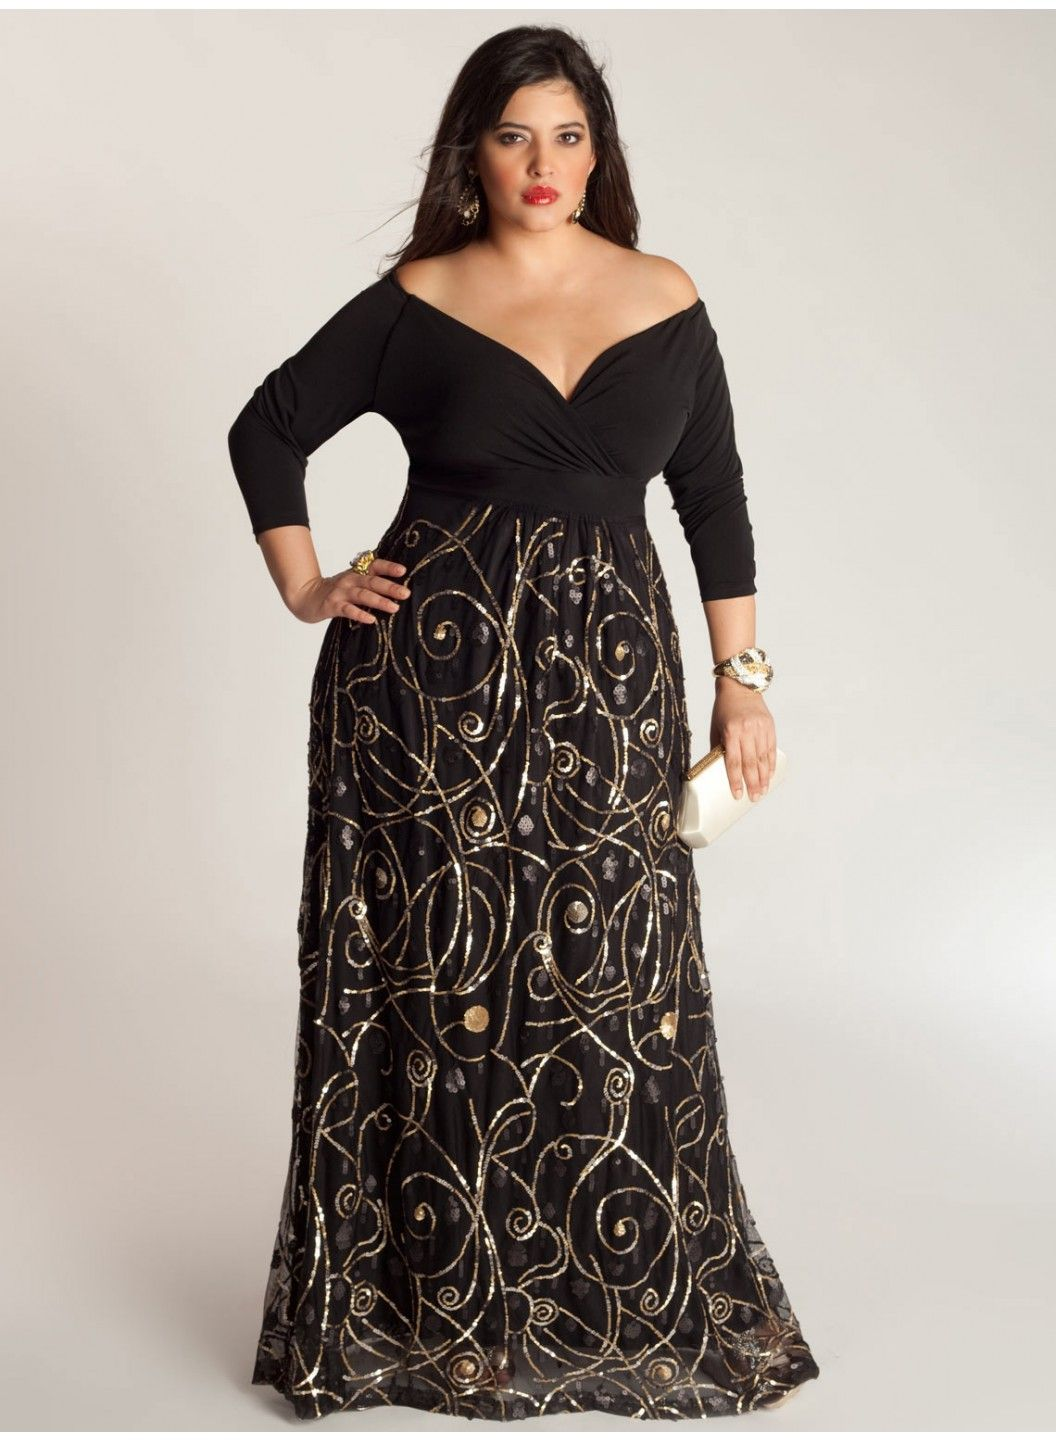 20 Plus Size Evening Dresses to Look Like Queen | Dresses ...